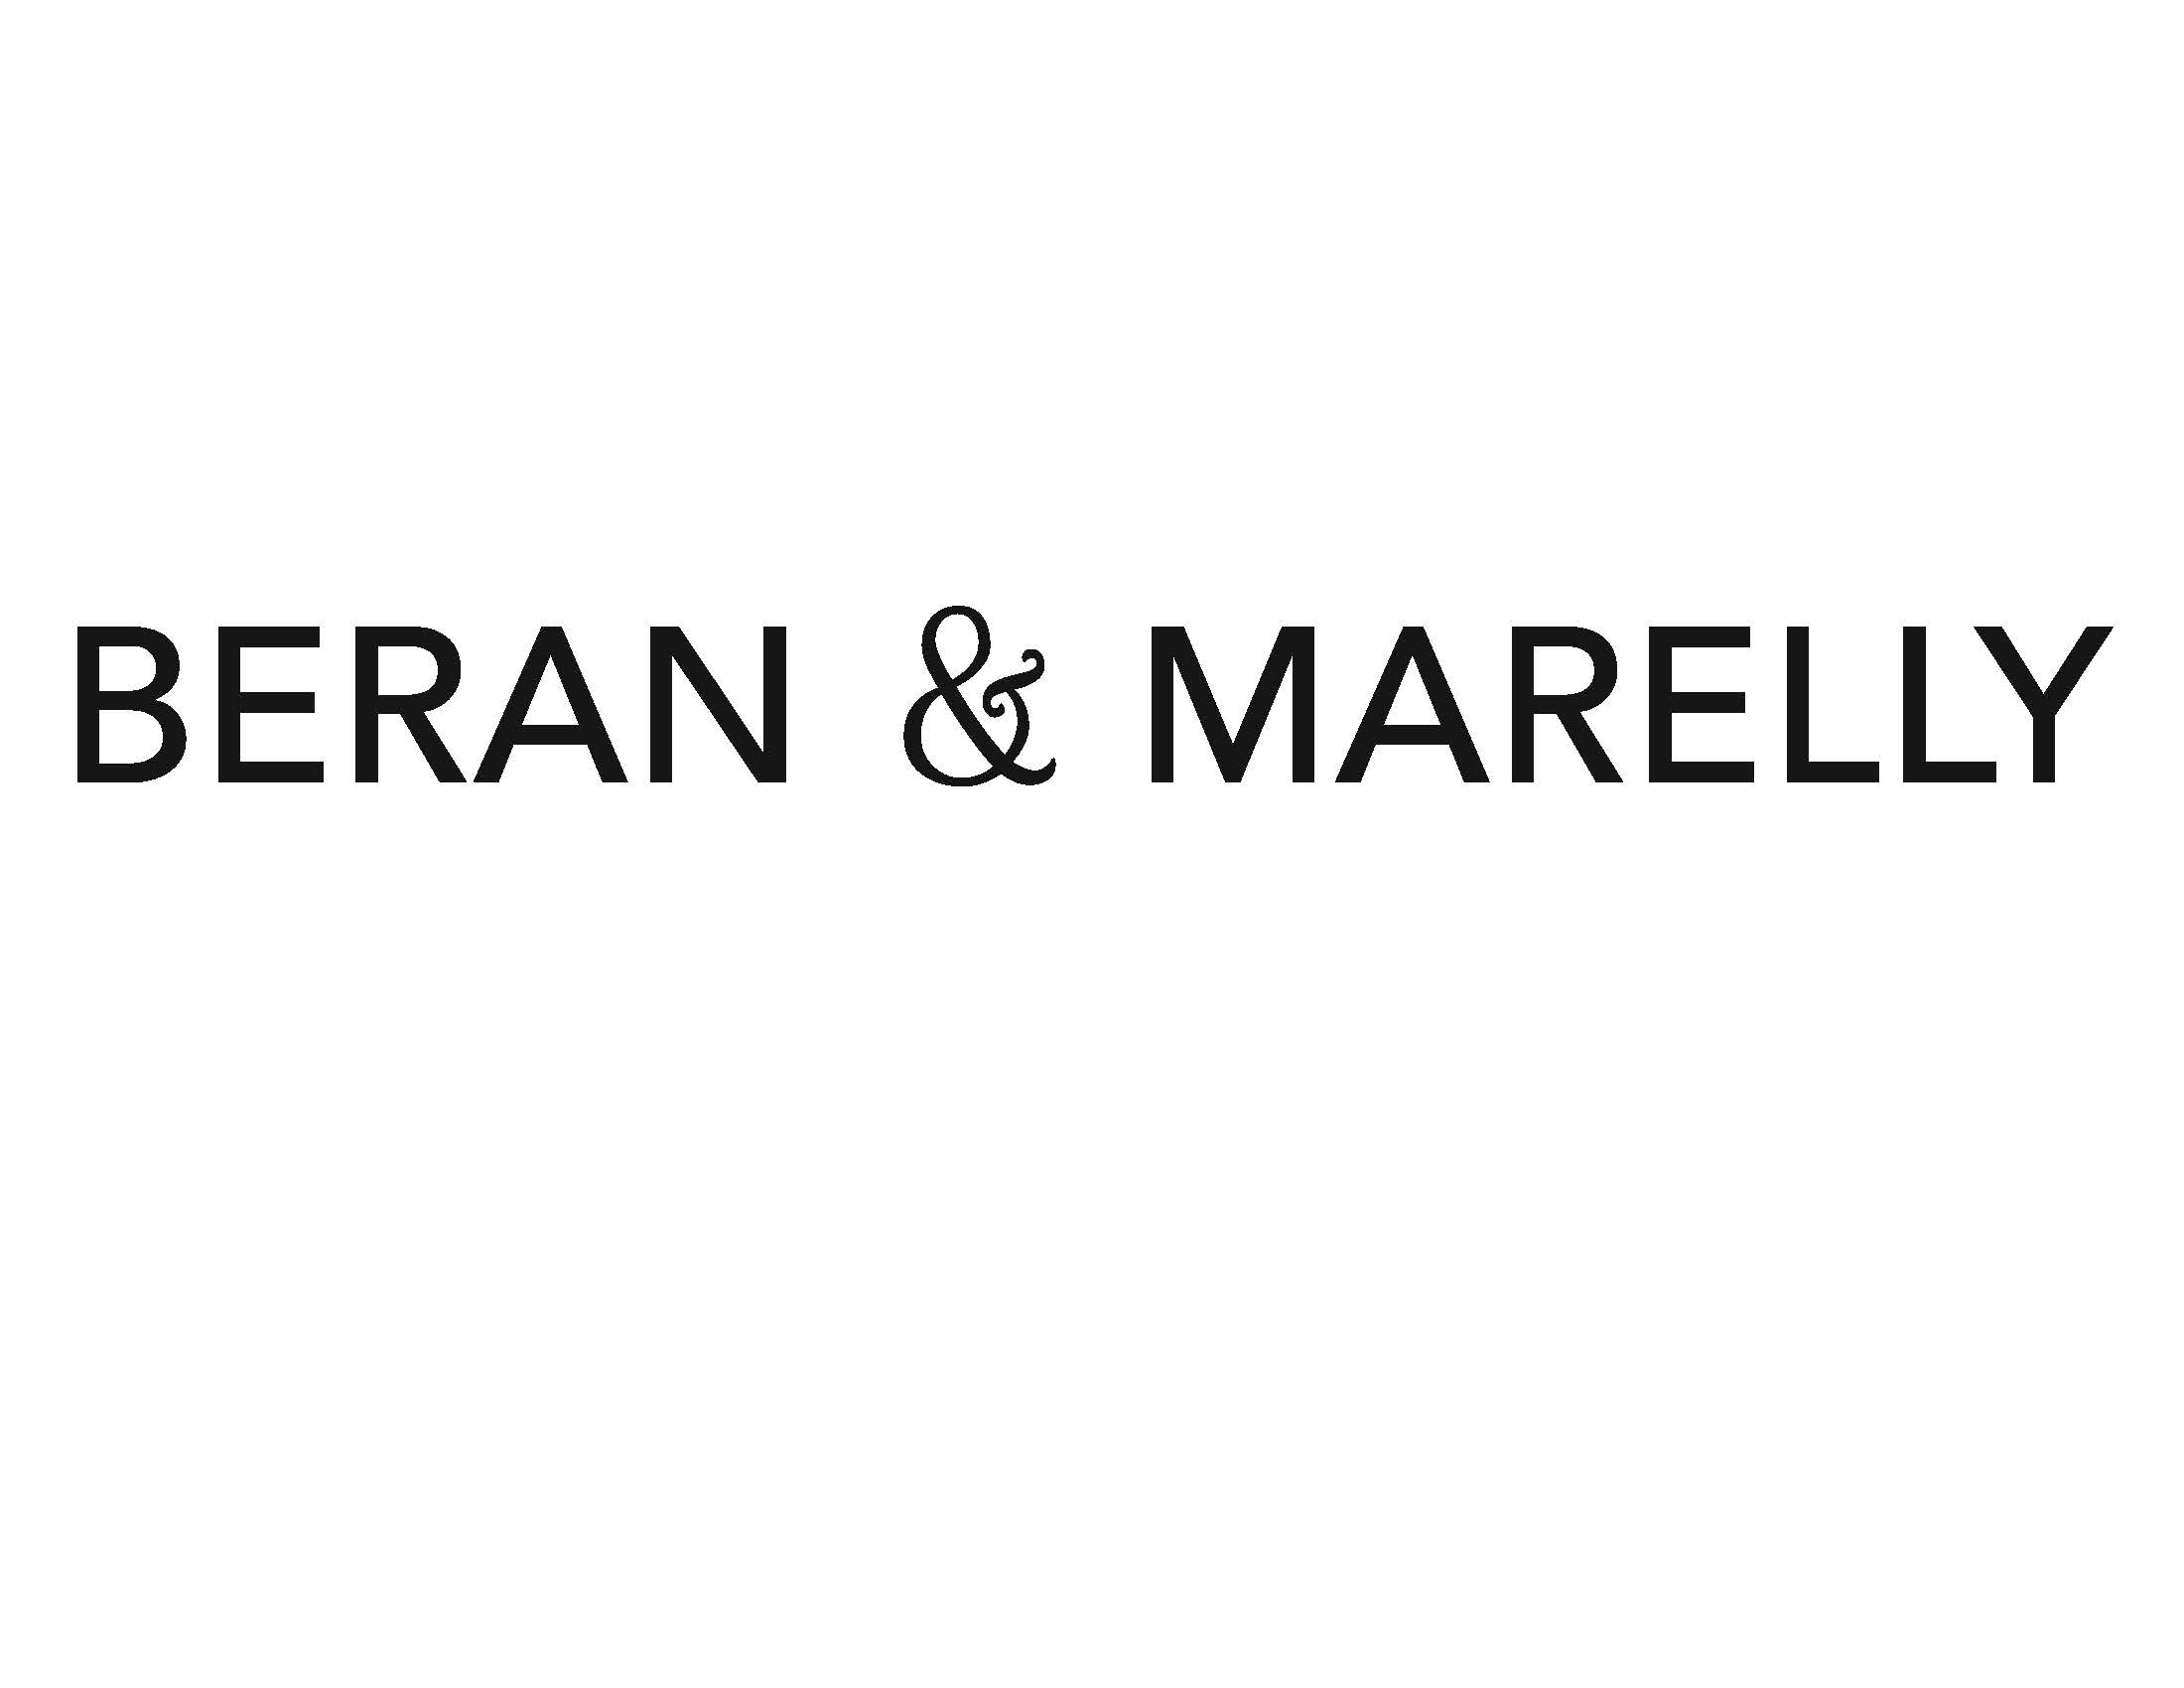 Beran and Marelly